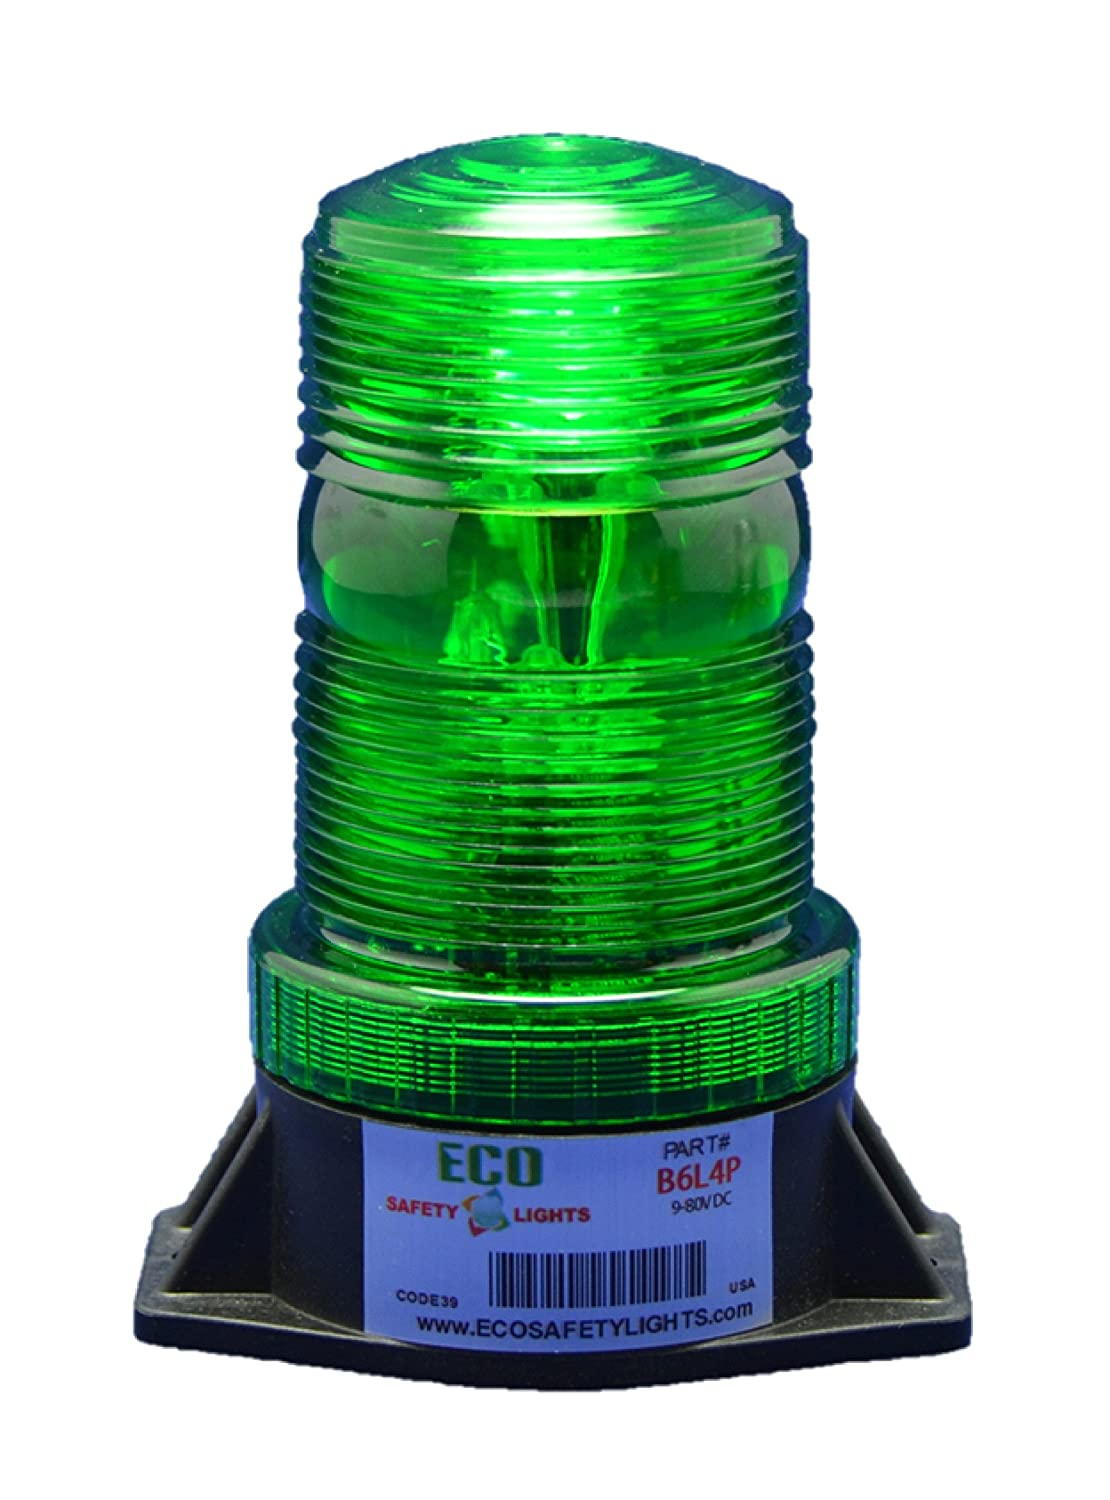 B6L4PACT GREEN 85-265V AC 3W LED 1/2 NPT PIPE MOUNT EMERGENCY WARNING LIGHT BEACON STROBE EFFECT 110V 120V 220V 240V ESafety Lights